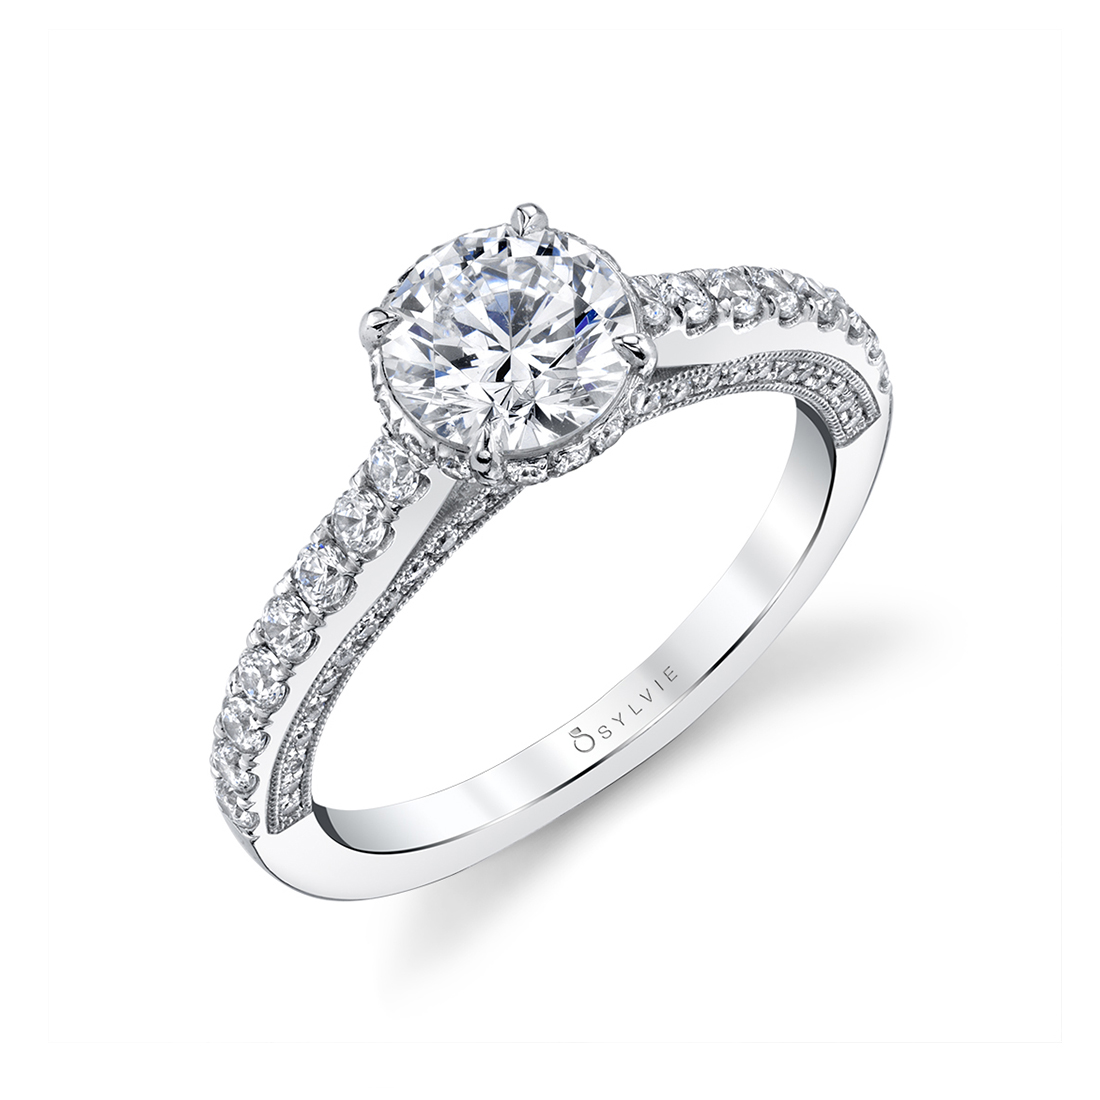 Hidden Halo Engagement Ring in white gold - Marianna - S1948